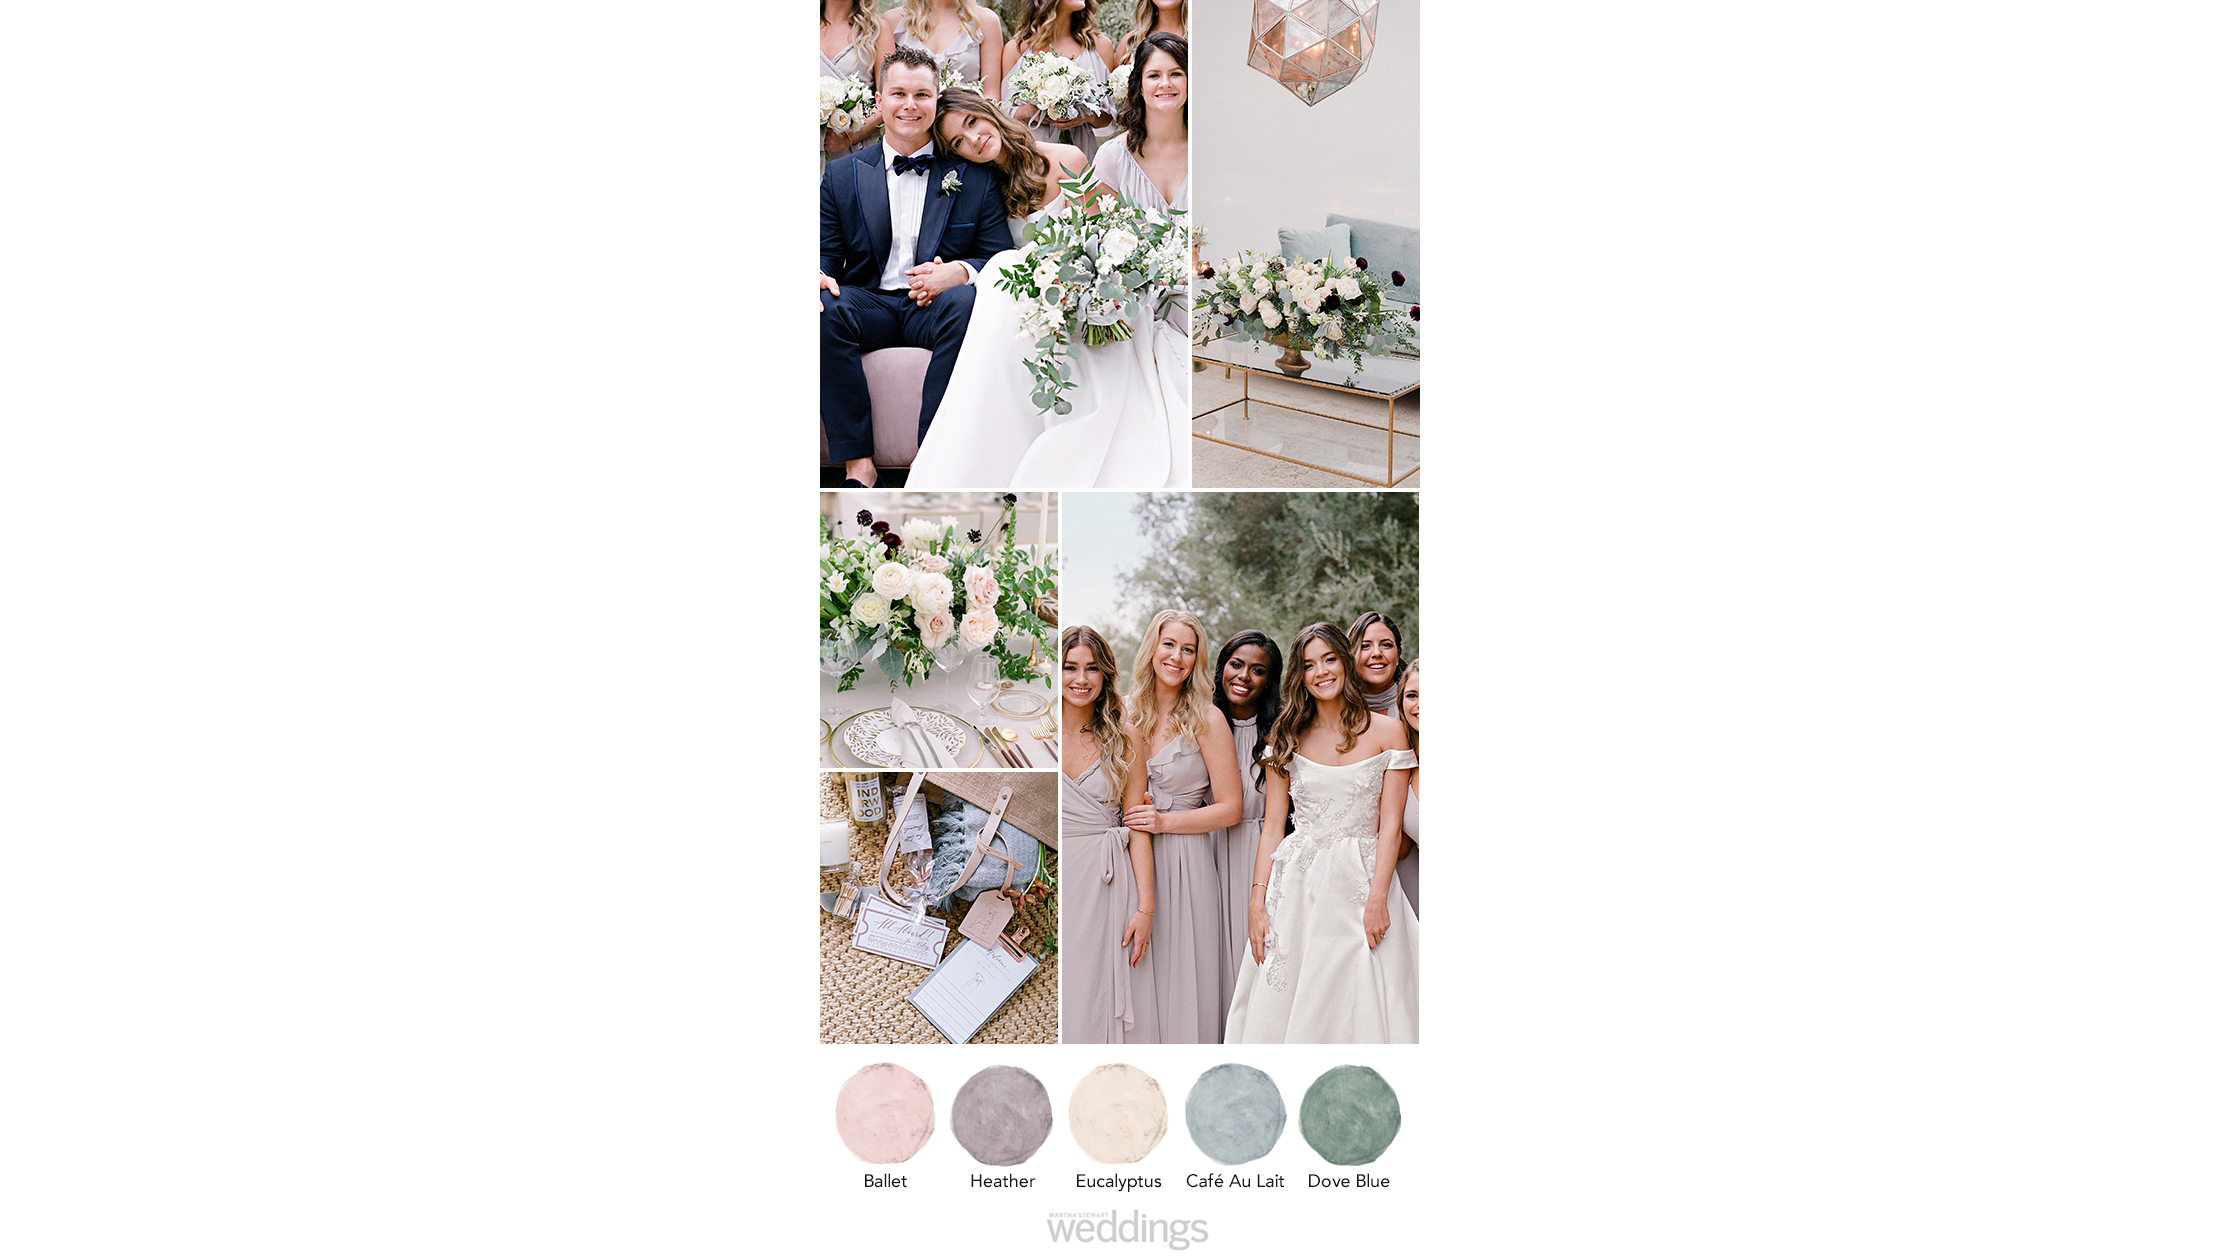 wintery purple wedding color palette ideas